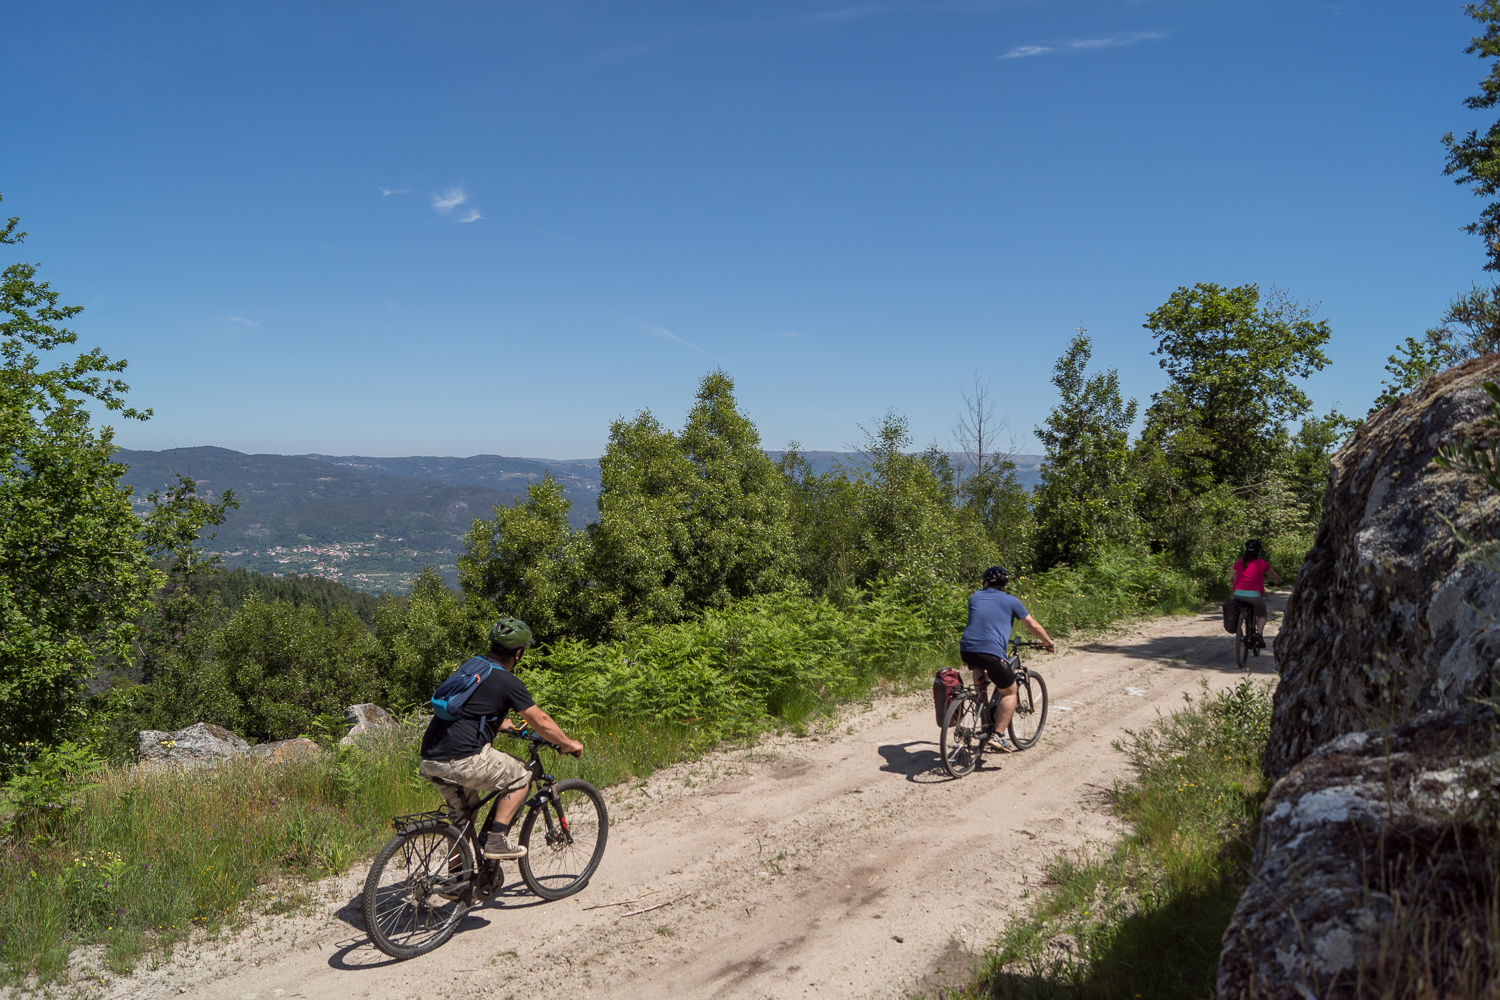 Biking on dirtroads in a mountain scene, Day tours, Vale do Vouga, Serra do Ladário, Portugal